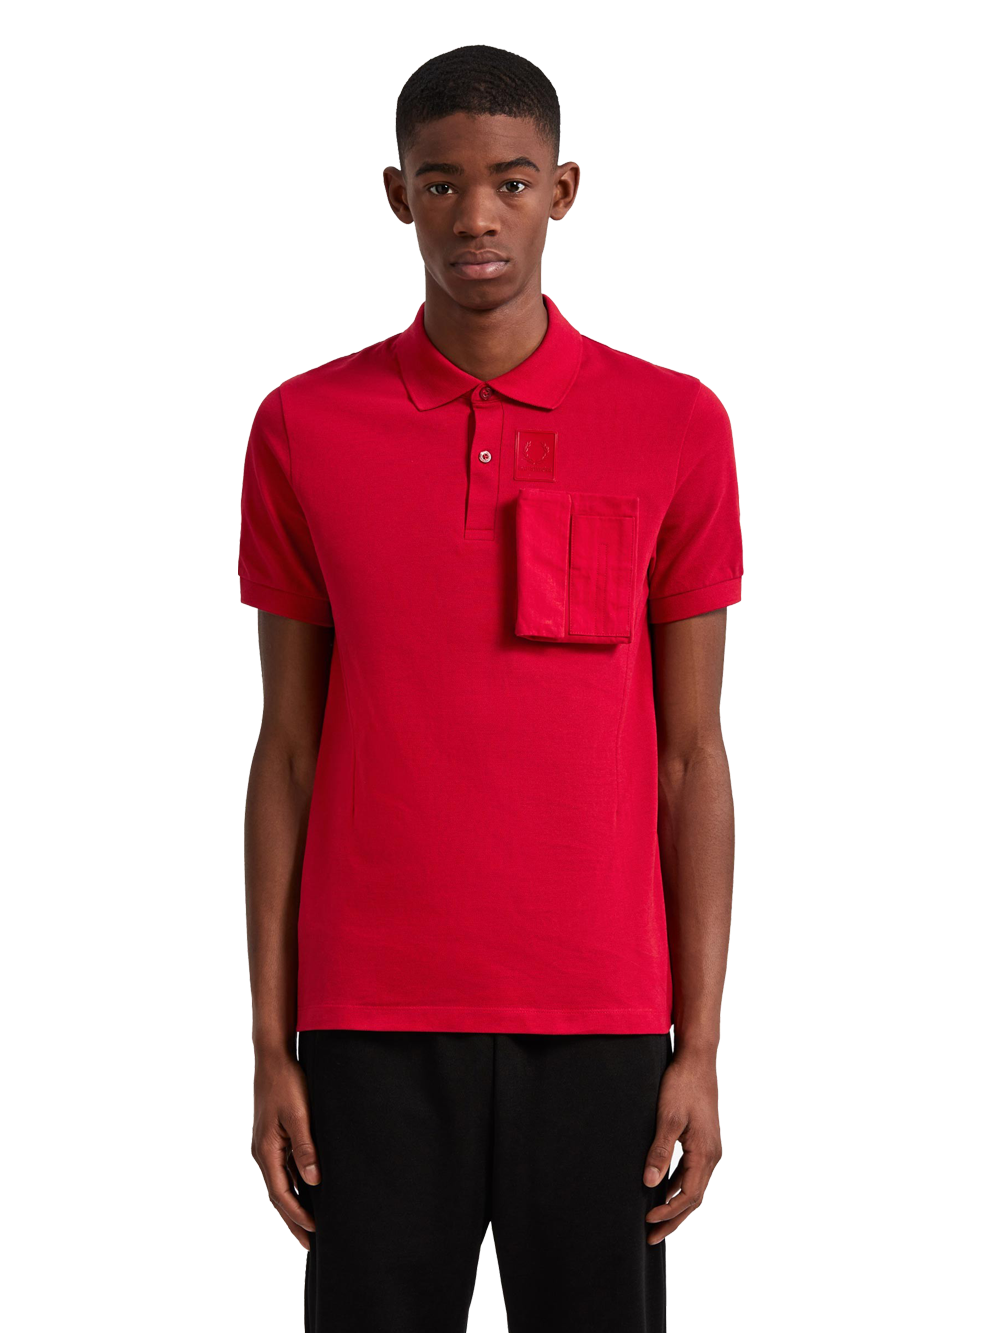 RAF SIMONS SM5131 SPACE PIQUE SHIRT WINTER RED